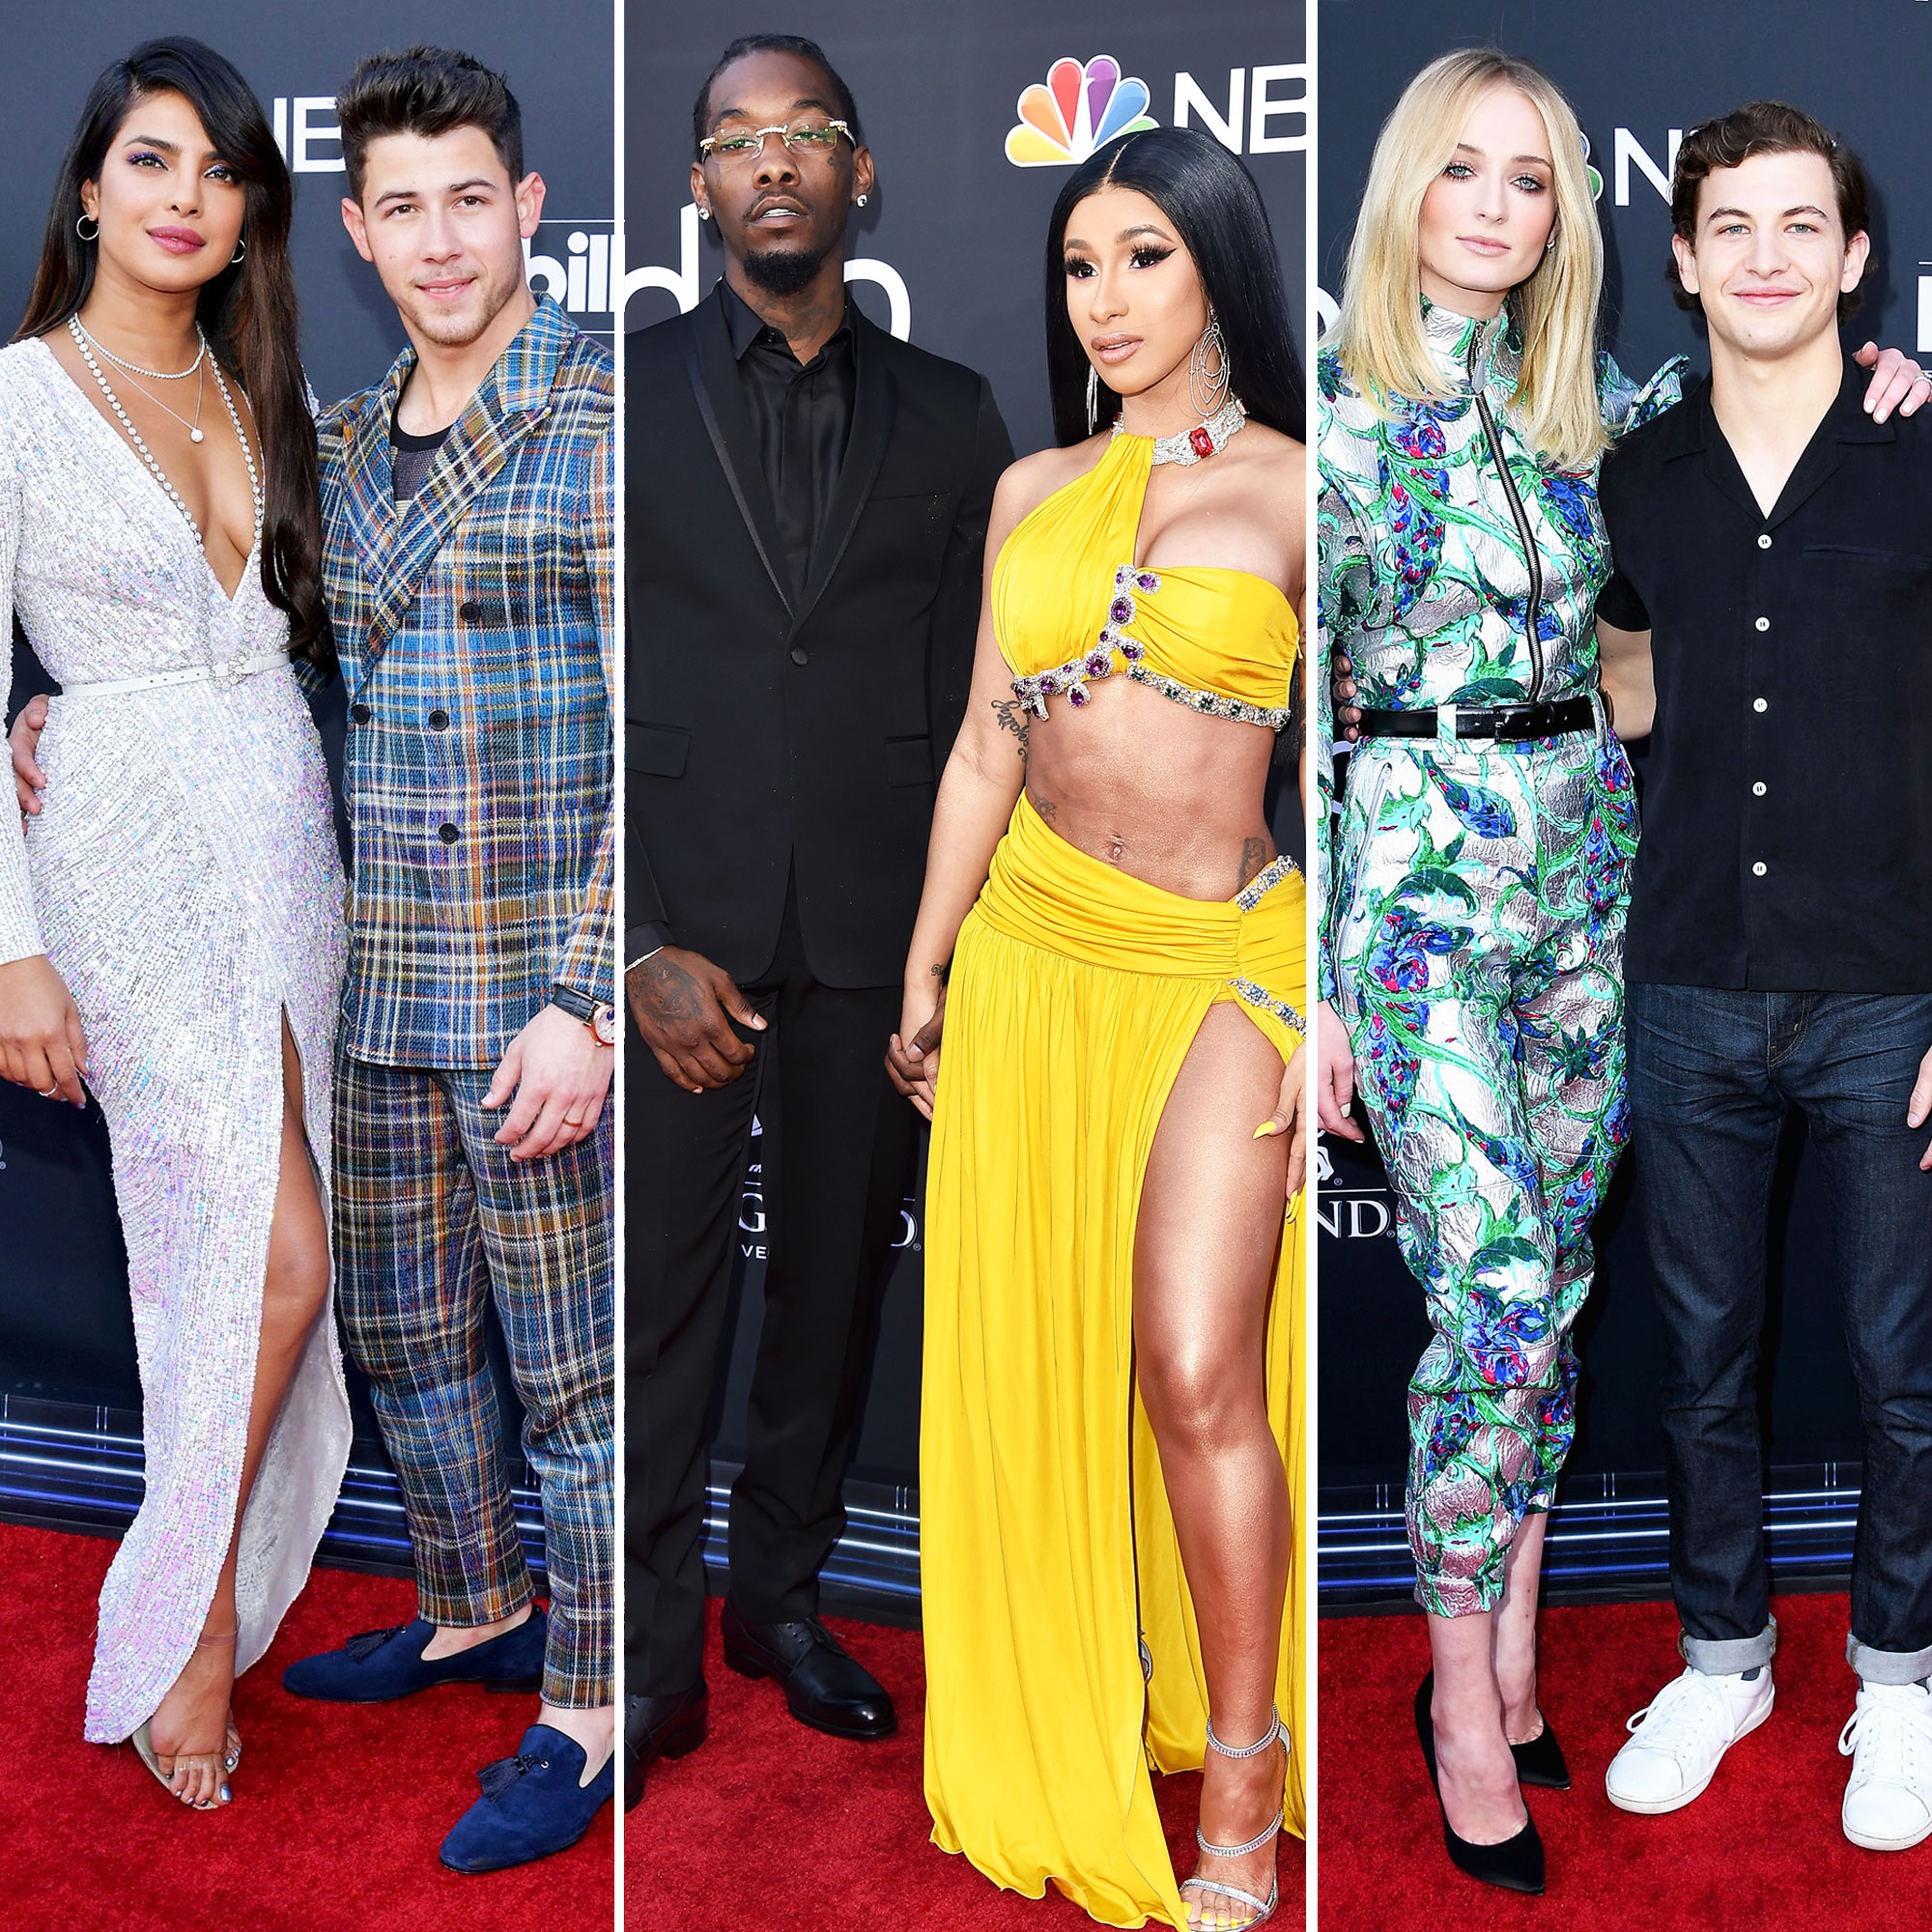 See the Hottest Couples at the BBMAs Priyanka Chopra, Nick Jonas, Offset, Cardi B, Sophie Turner, and Tye Sheridan - Priyanka Chopra, Nick Jonas, Offset, Cardi B, Sophie Turner, and Tye Sheridan